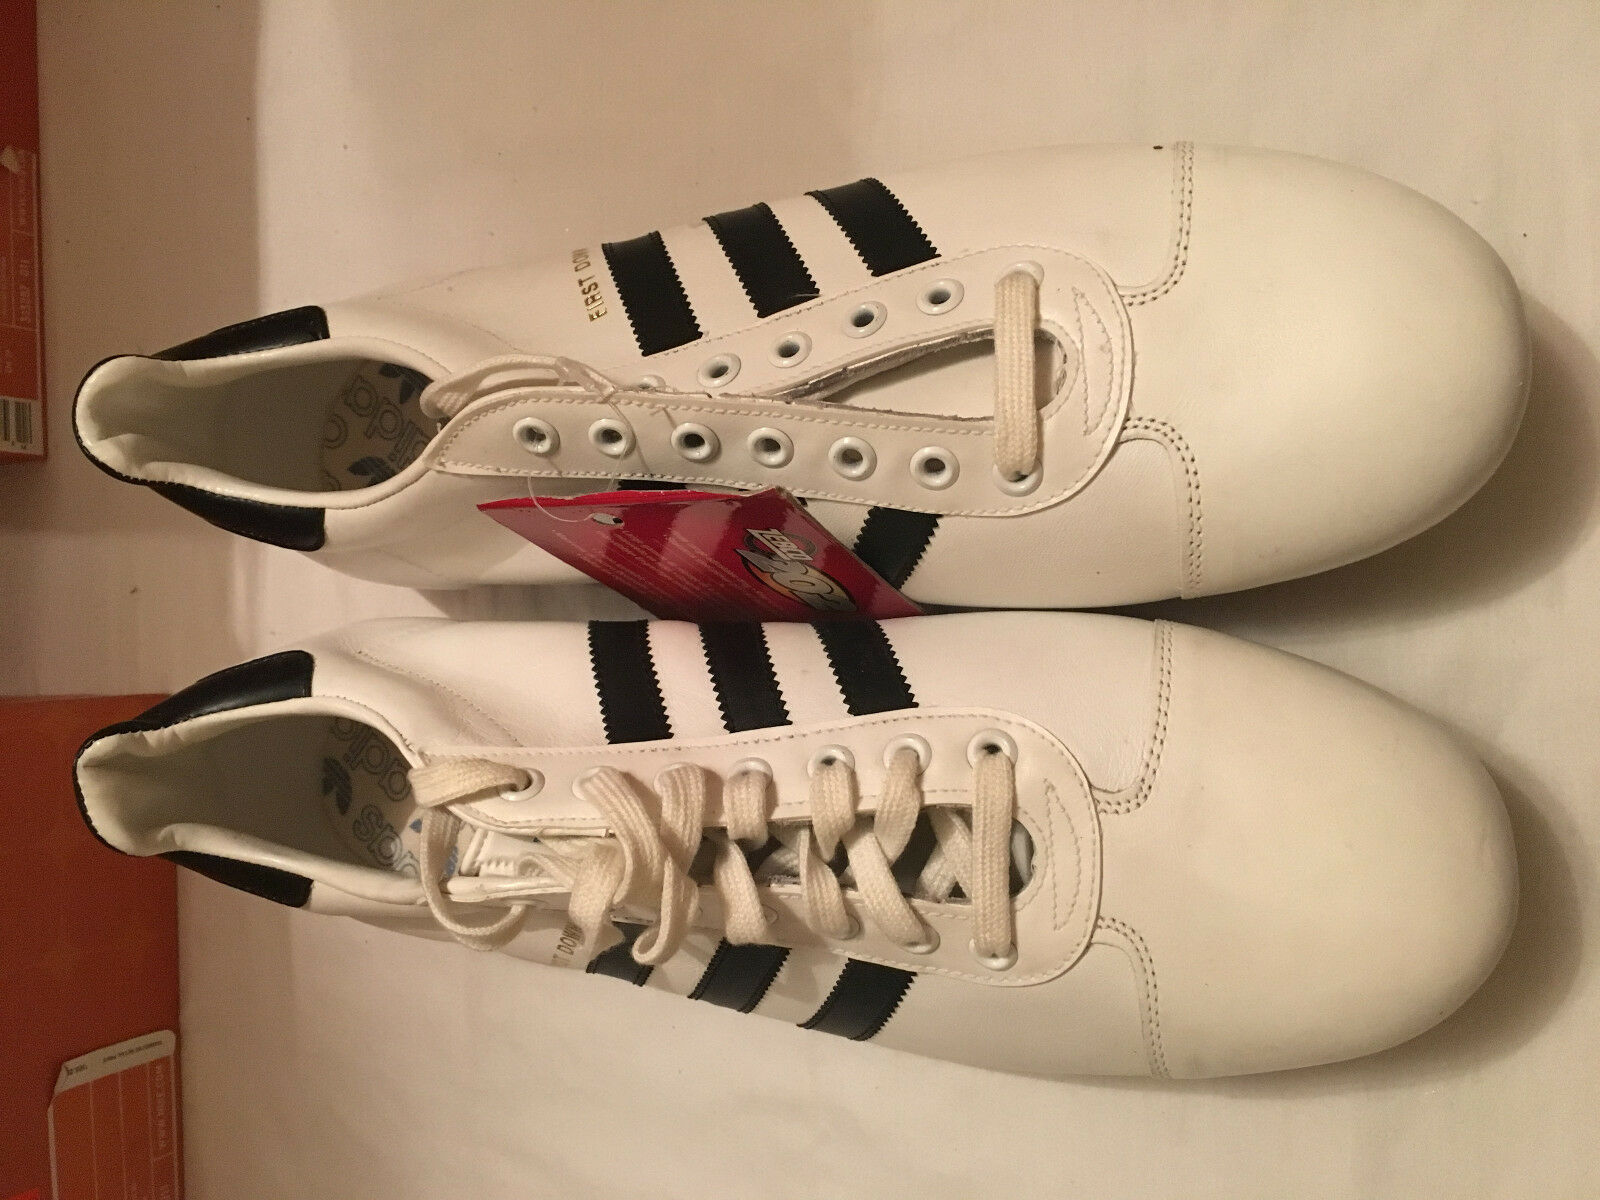 Adidas Fist Down 7967 Men's Football Soocer Cleats White/Black size 13 Brand discount